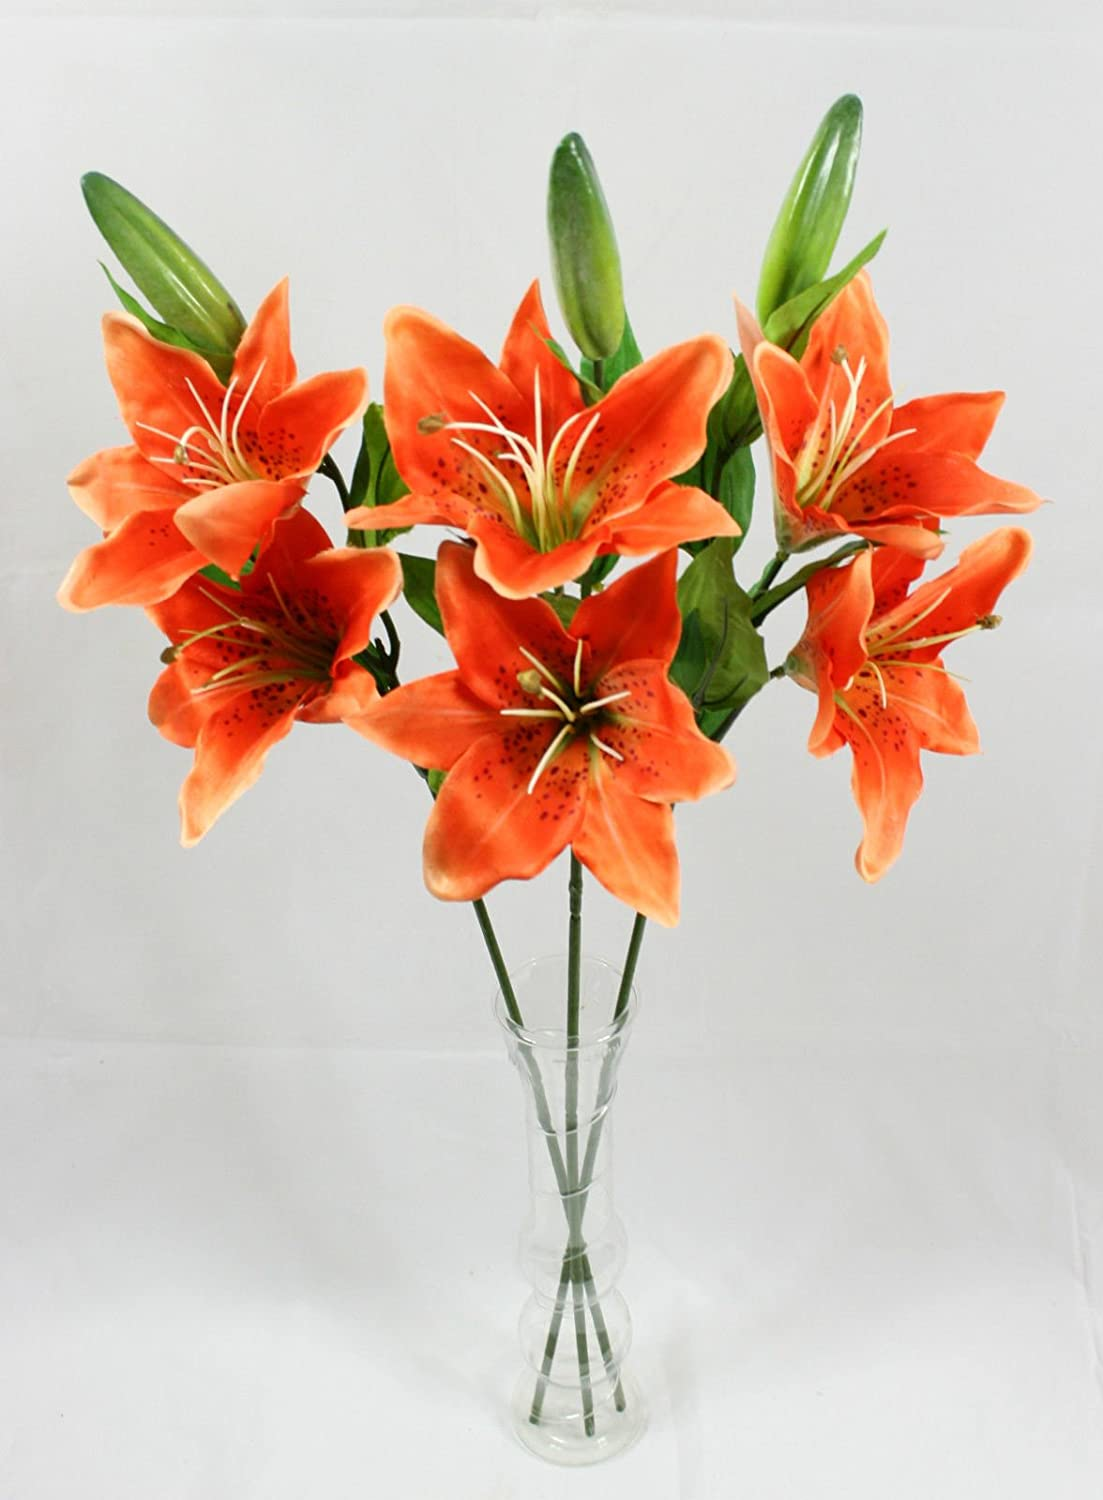 Artificial Lily Spray 3 Orange Stem Realistic Looking Flowers